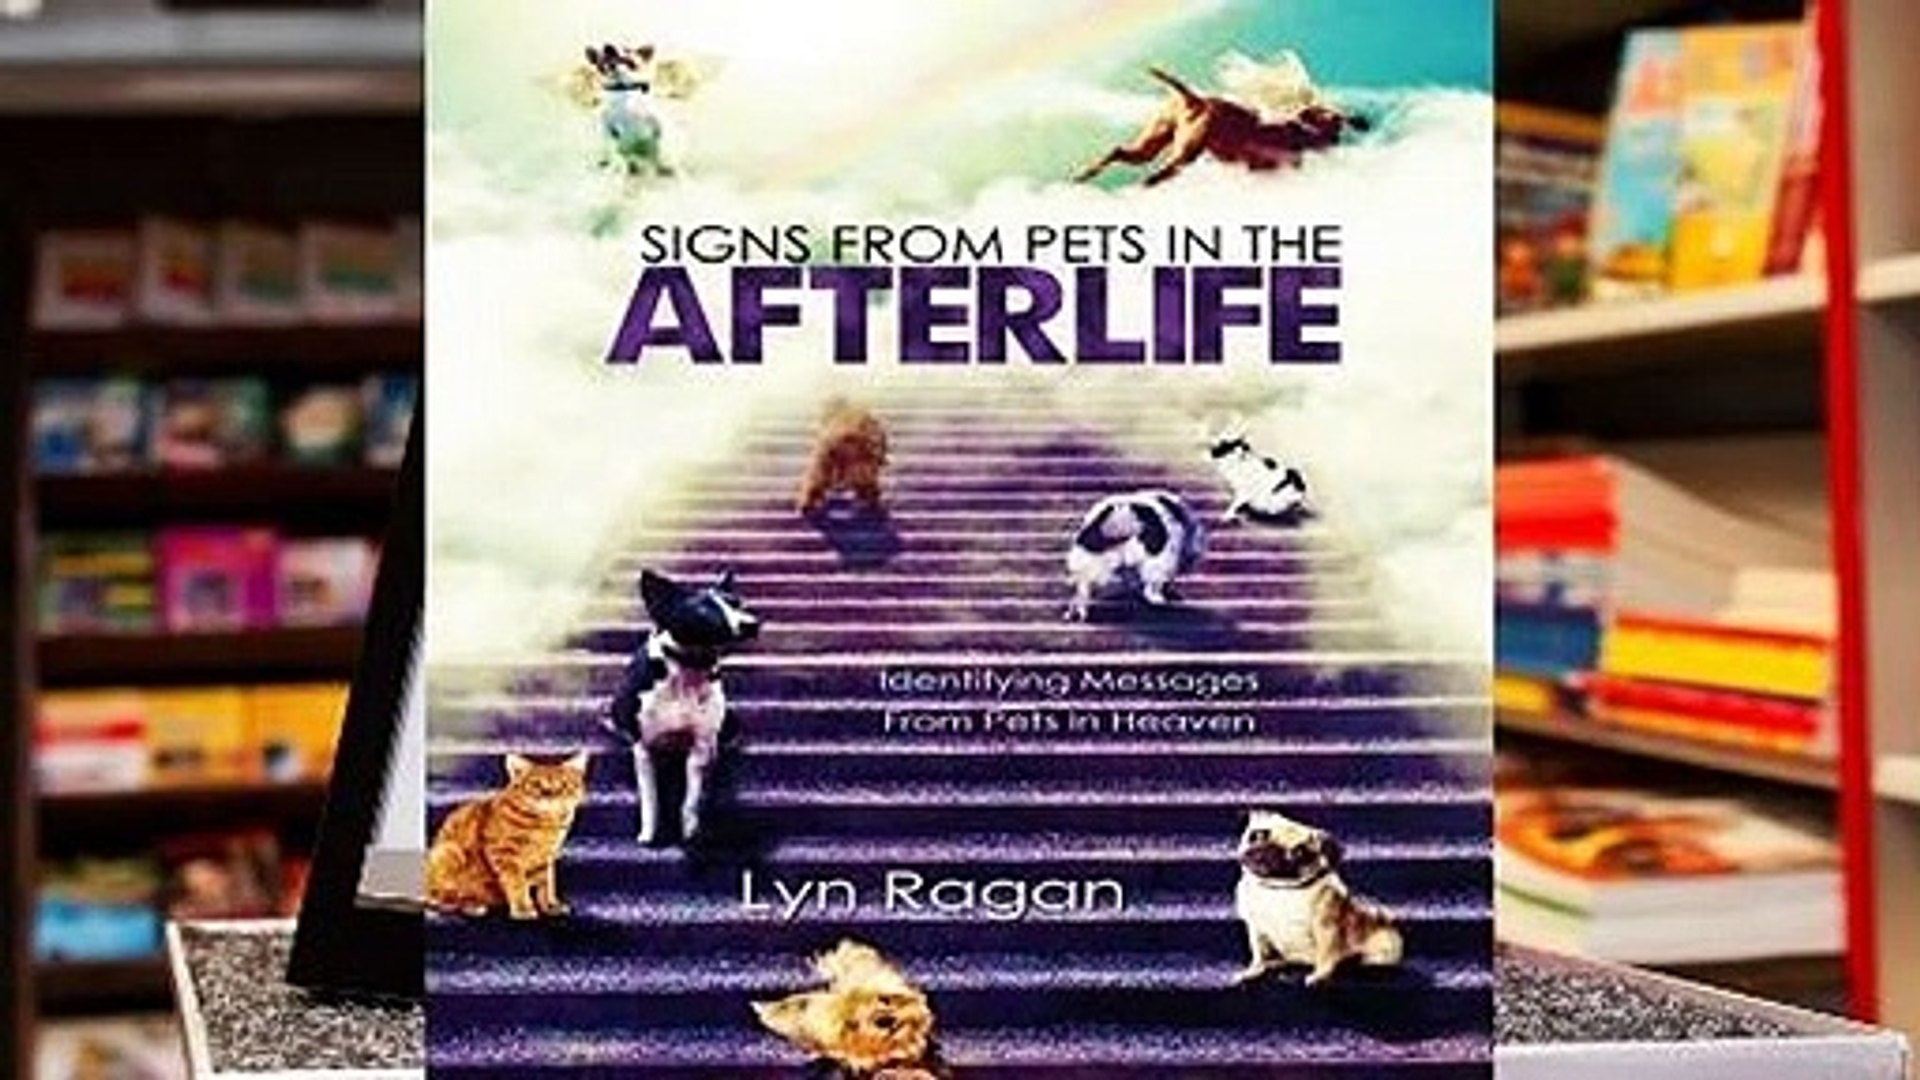 Full version  Signs From Pets In The Afterlife: Identifying Messages From Pets In Heaven  For